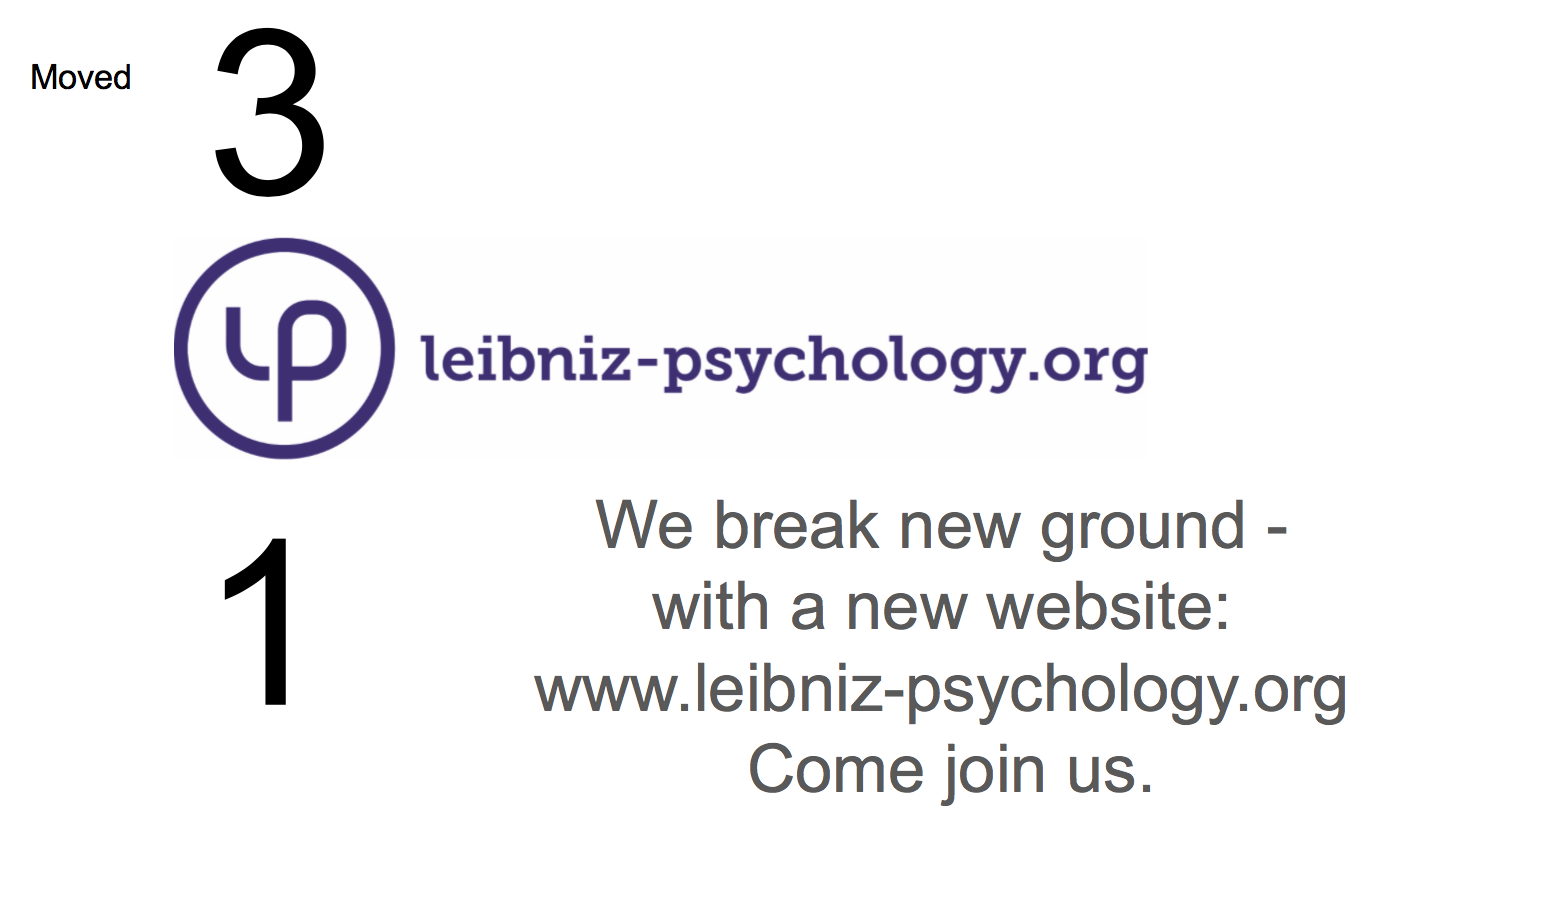 We break new ground - with a new website: www.leibniz-psychology.org